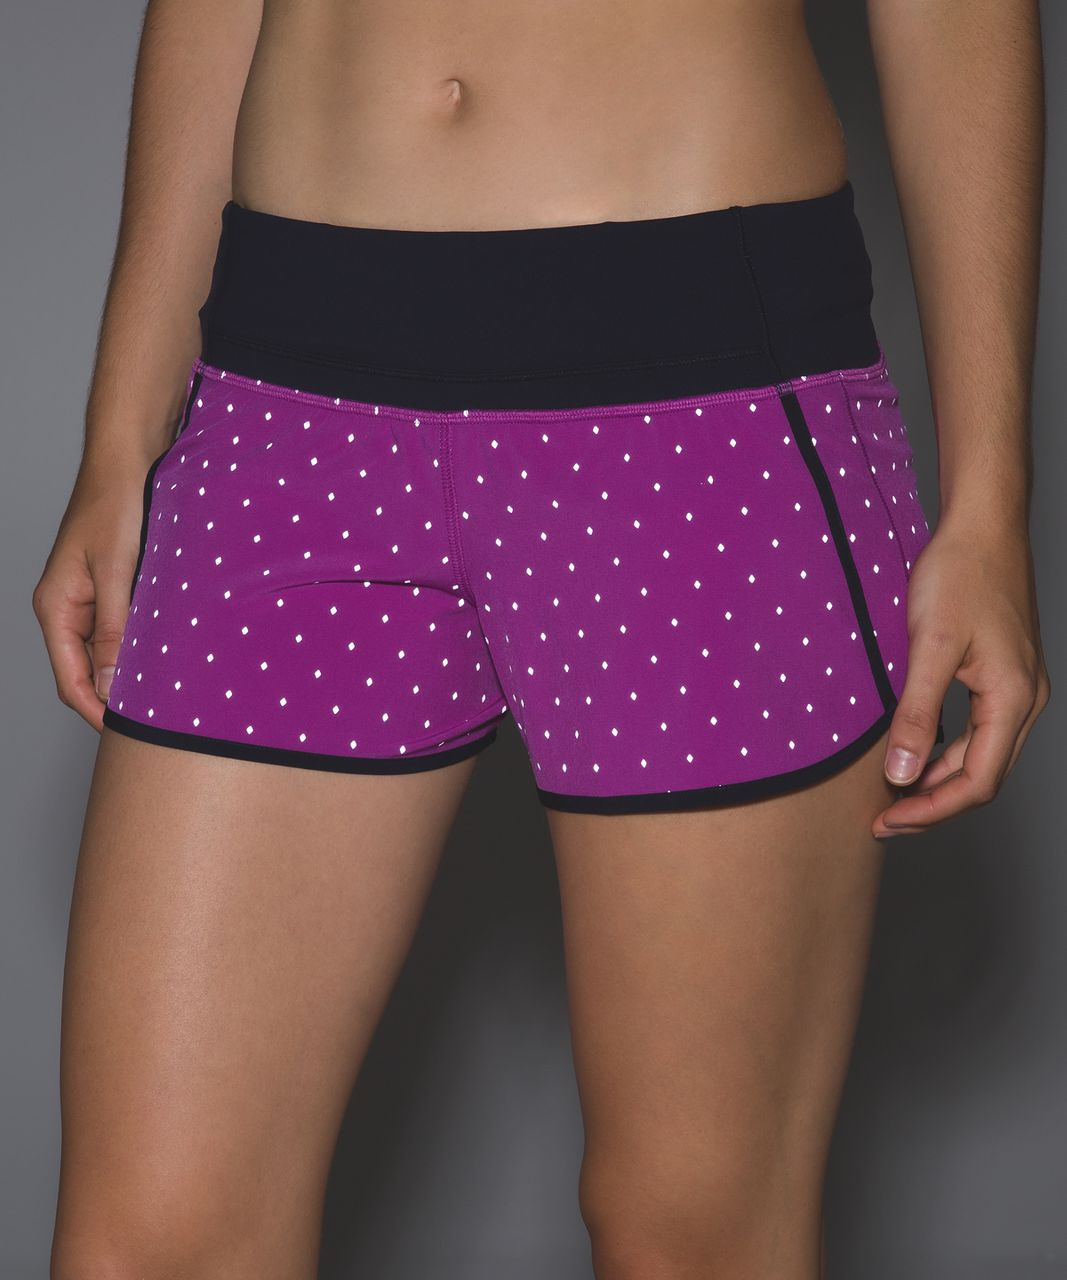 Lululemon Run Times Short (Reflective) *4-way Stretch - Night Fall Ultra Violet Silver / Naval Blue